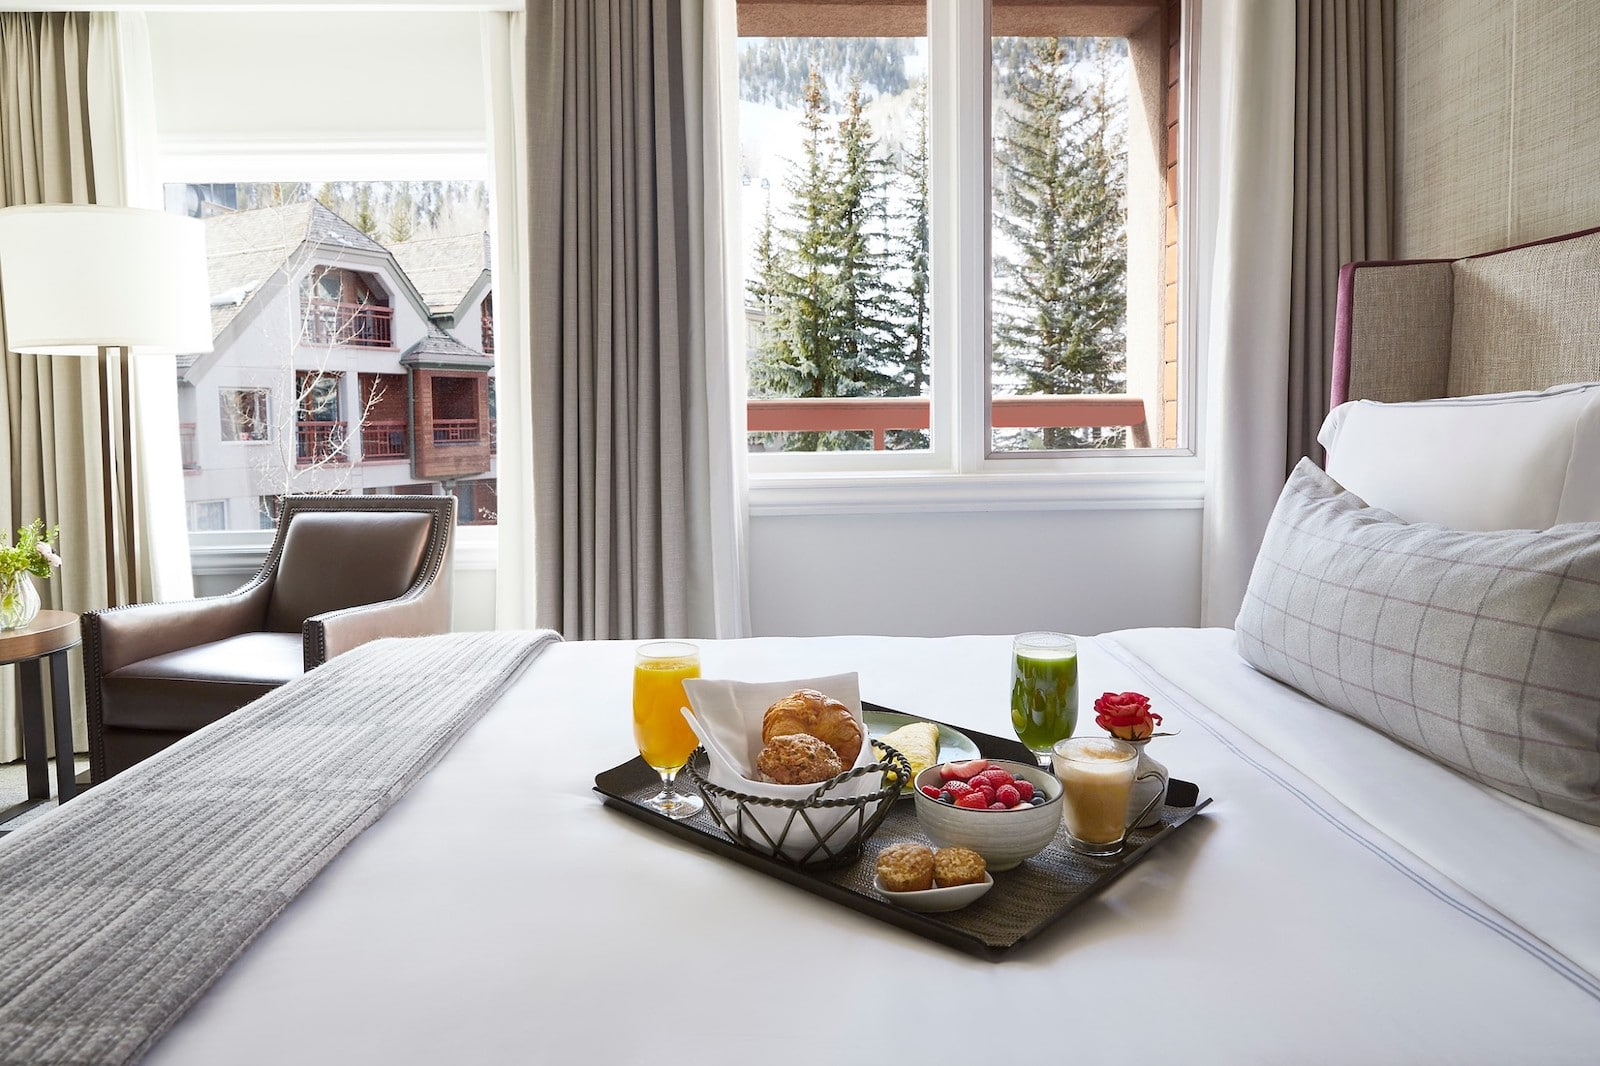 Image of breakfast on a bed at the The Little Nell in Aspen, Colorado